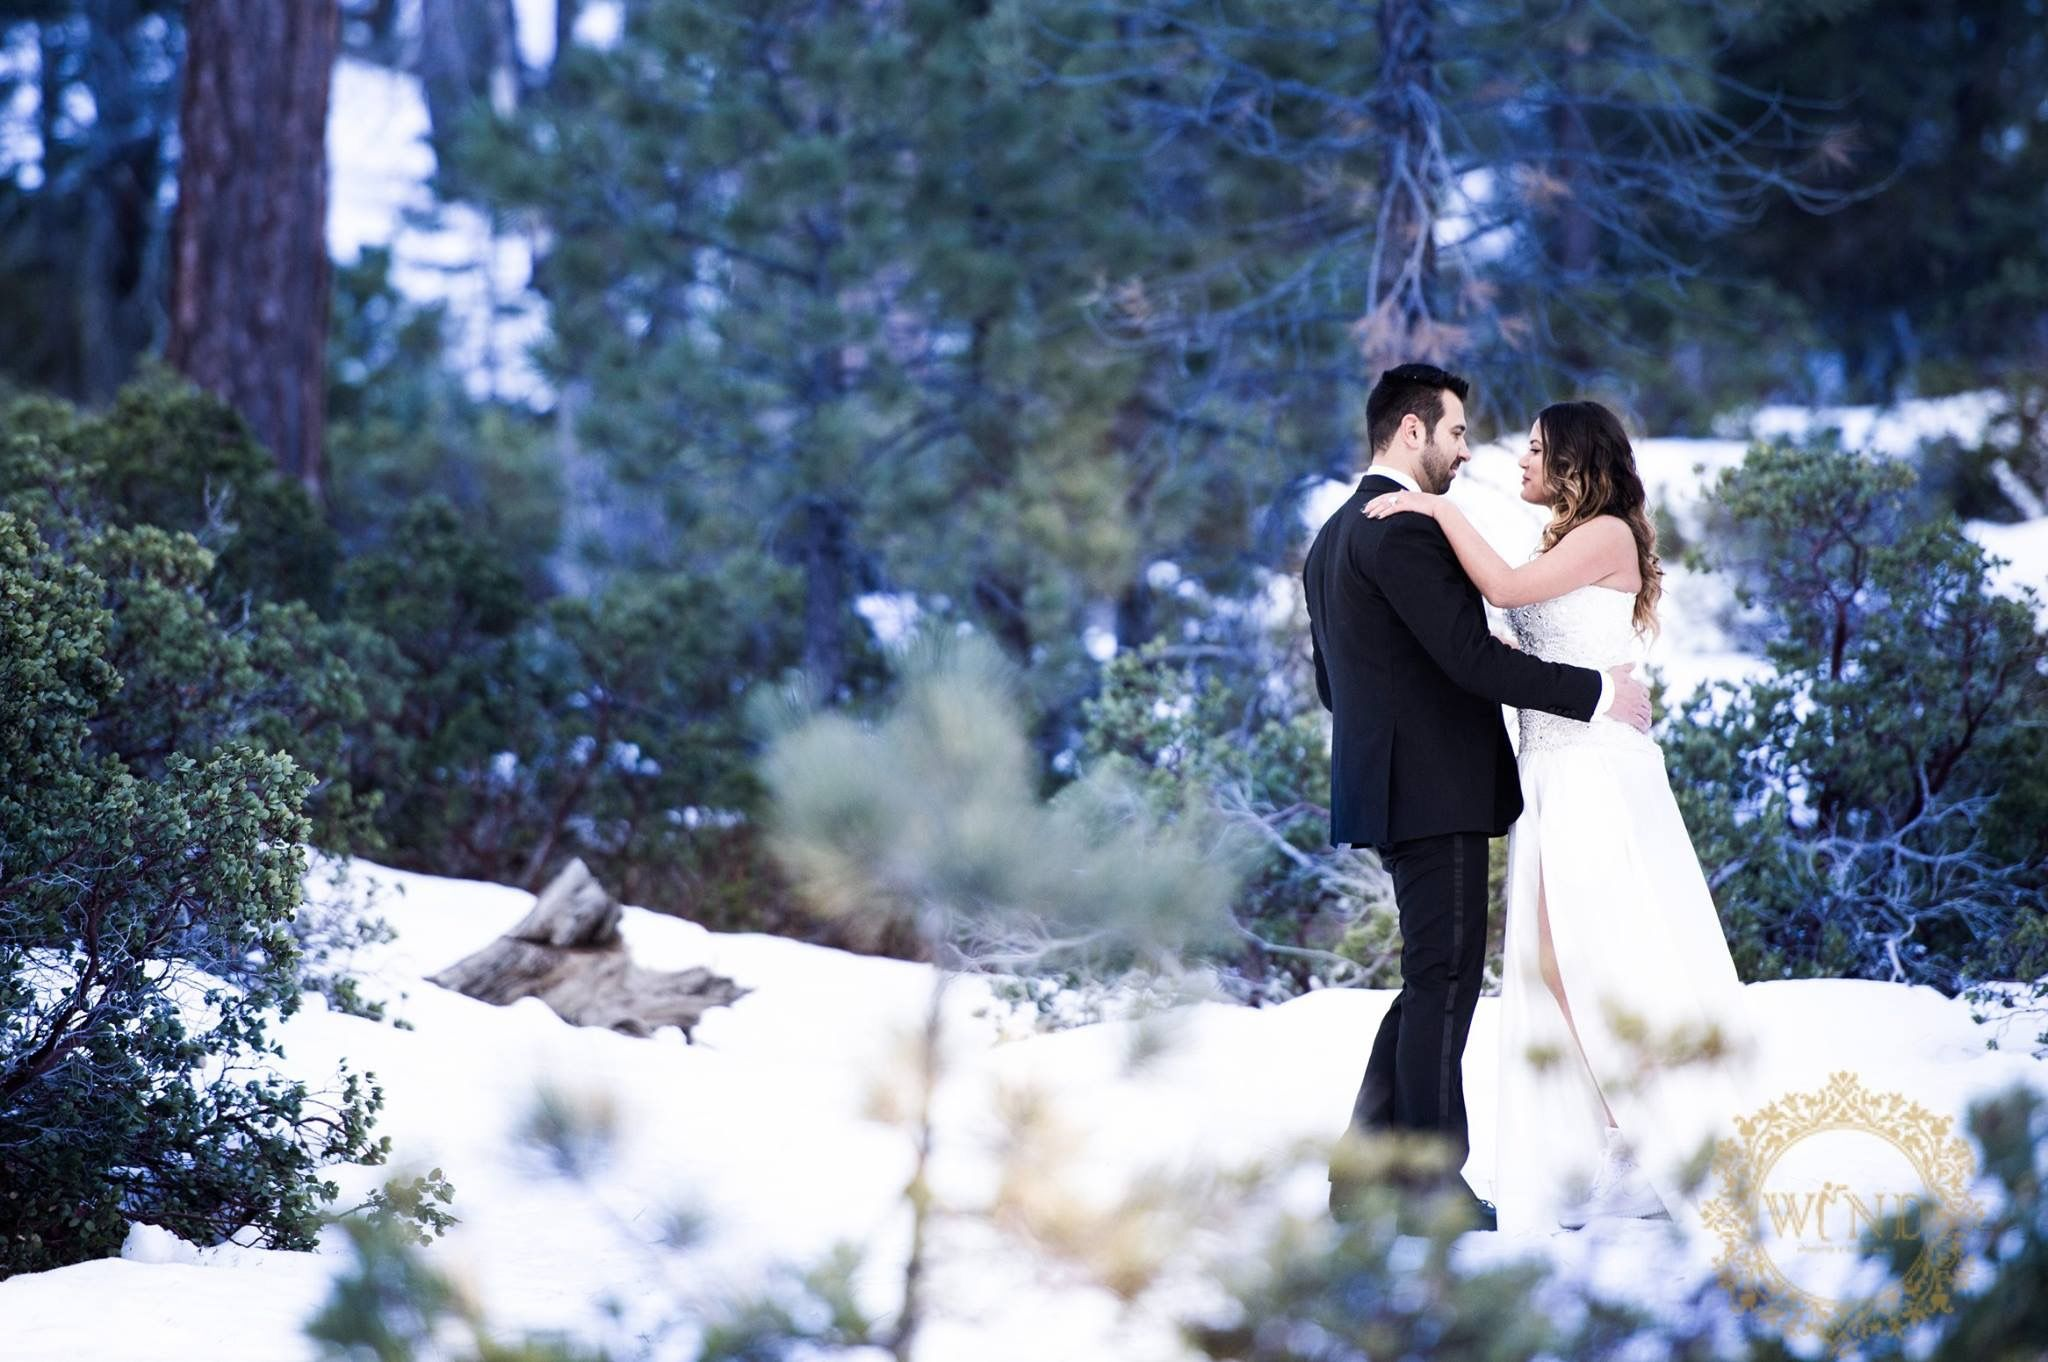 One of our beautiful bride. This gorgeous couple took our custom made tops to the snow and took these beautiful pictures after their wedding. Thank her for using our dress again   by @wind_productions #wedding #afterwedding #weddingdress #weddinggown #weddingfashion #bride #formerbride #bridetobe #soontobebride #marriage #truelove #love #bridal #bridaldress #bridalfashion #custommadedress #custom #hautecouture #hautecouturedress #hautecouturewedding #beverlyhills #bridesbyliza